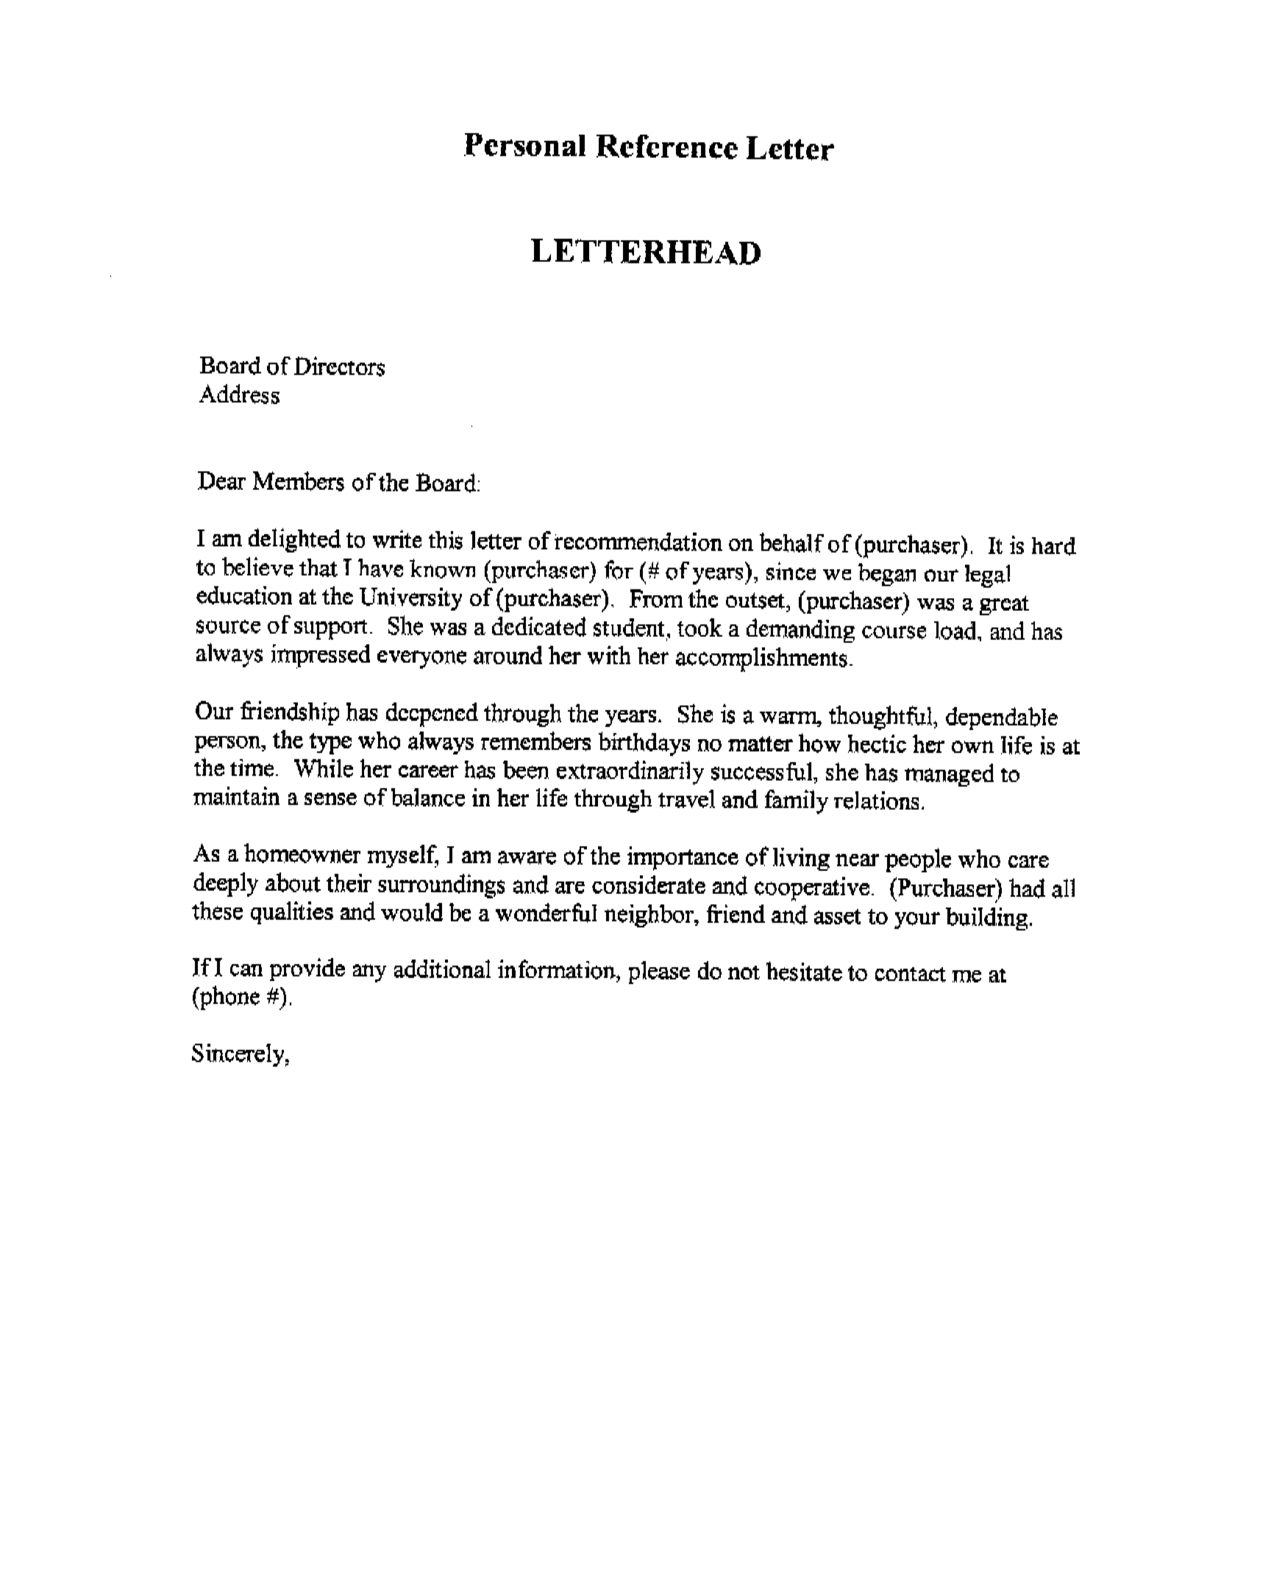 how to write a letter of recommendation for a friend Professional Recommendation Letter - This is an example of a ...